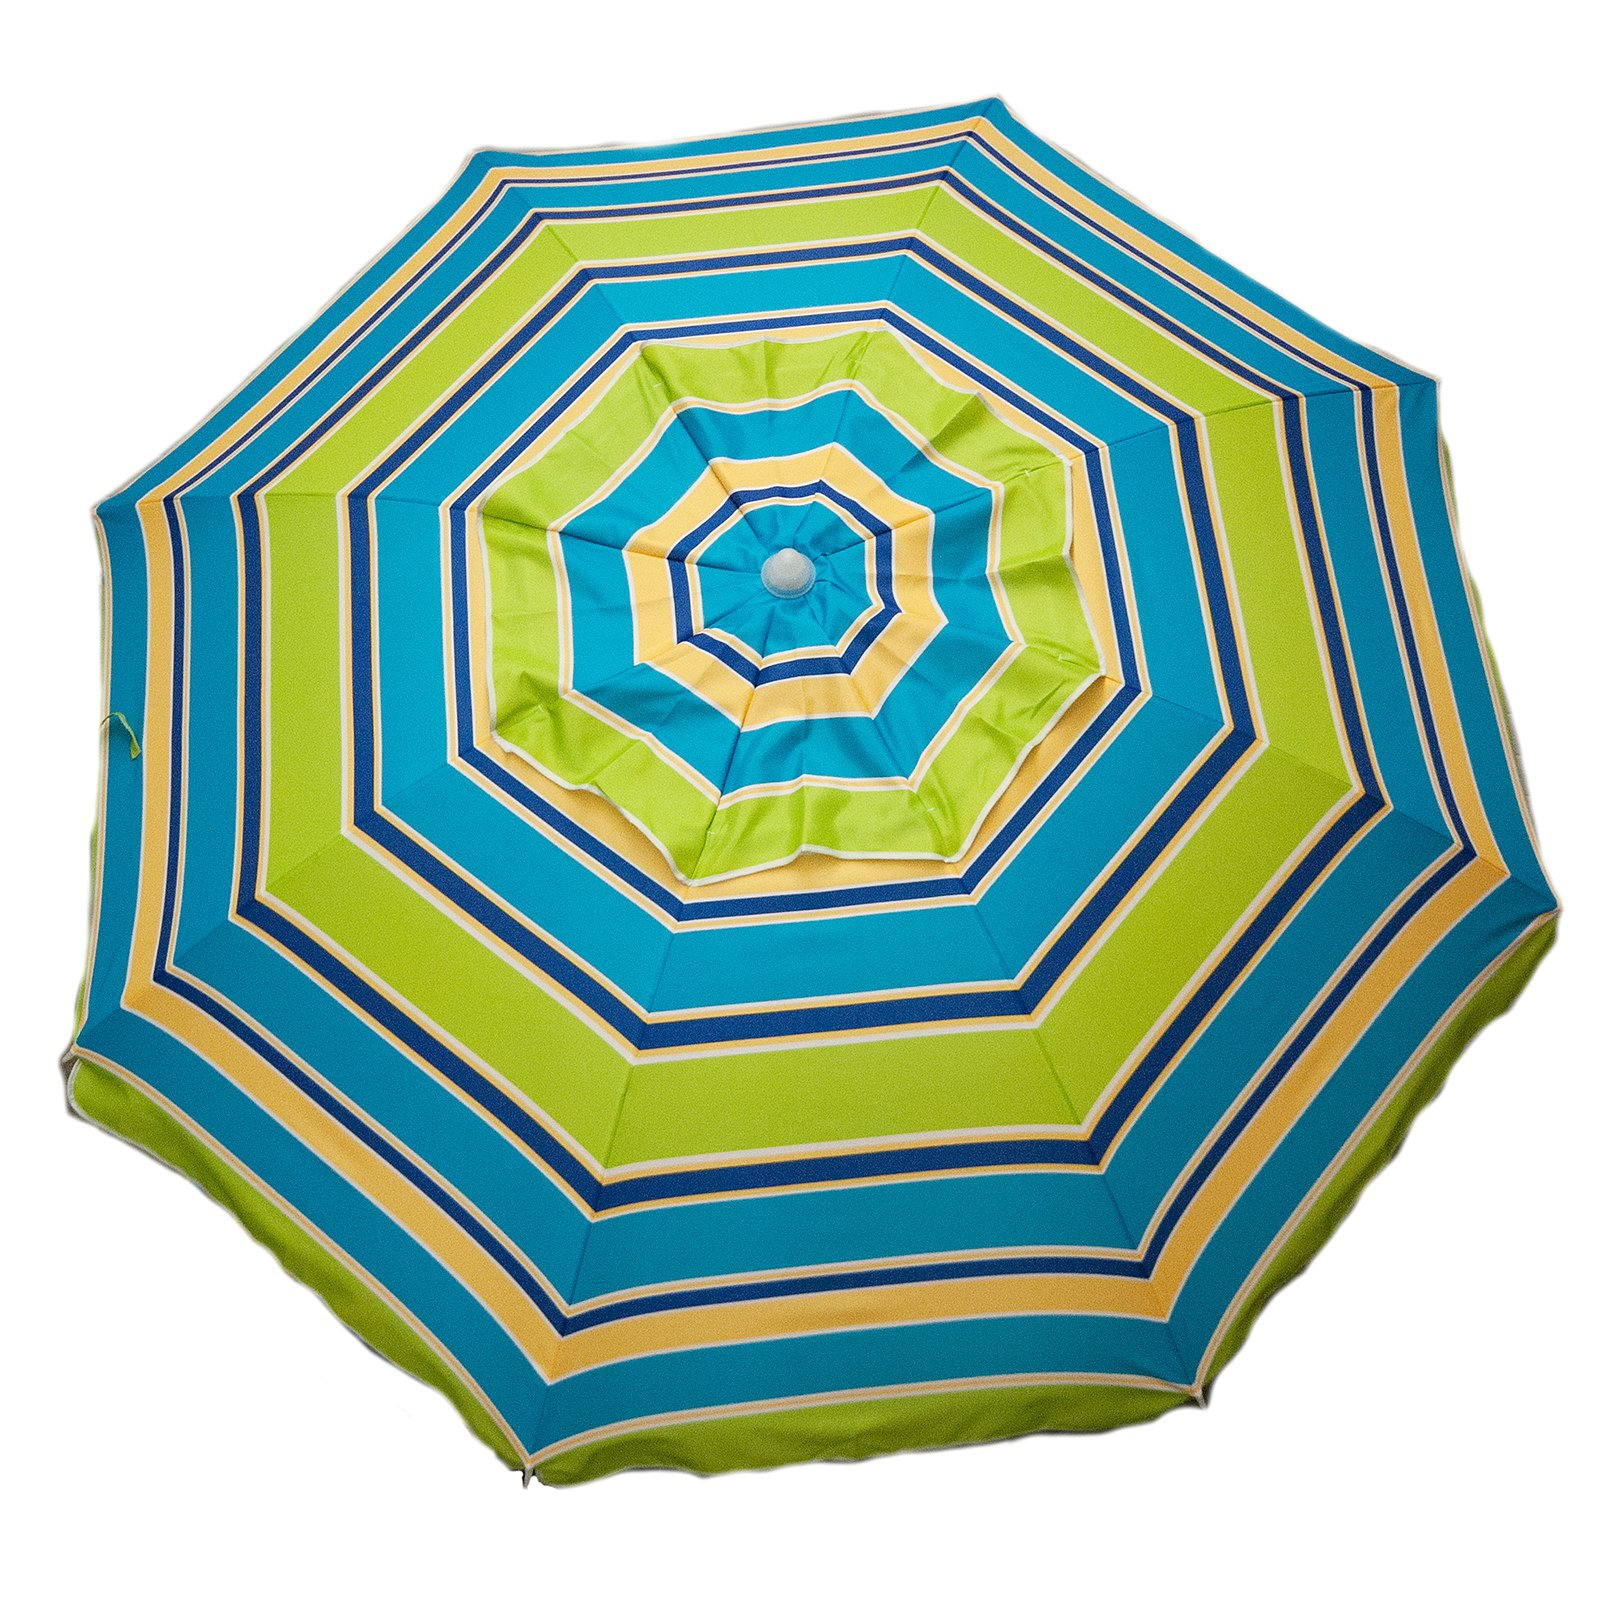 DestinationGear 7' Beach Umbrella Lime Stripe With Travel Bag